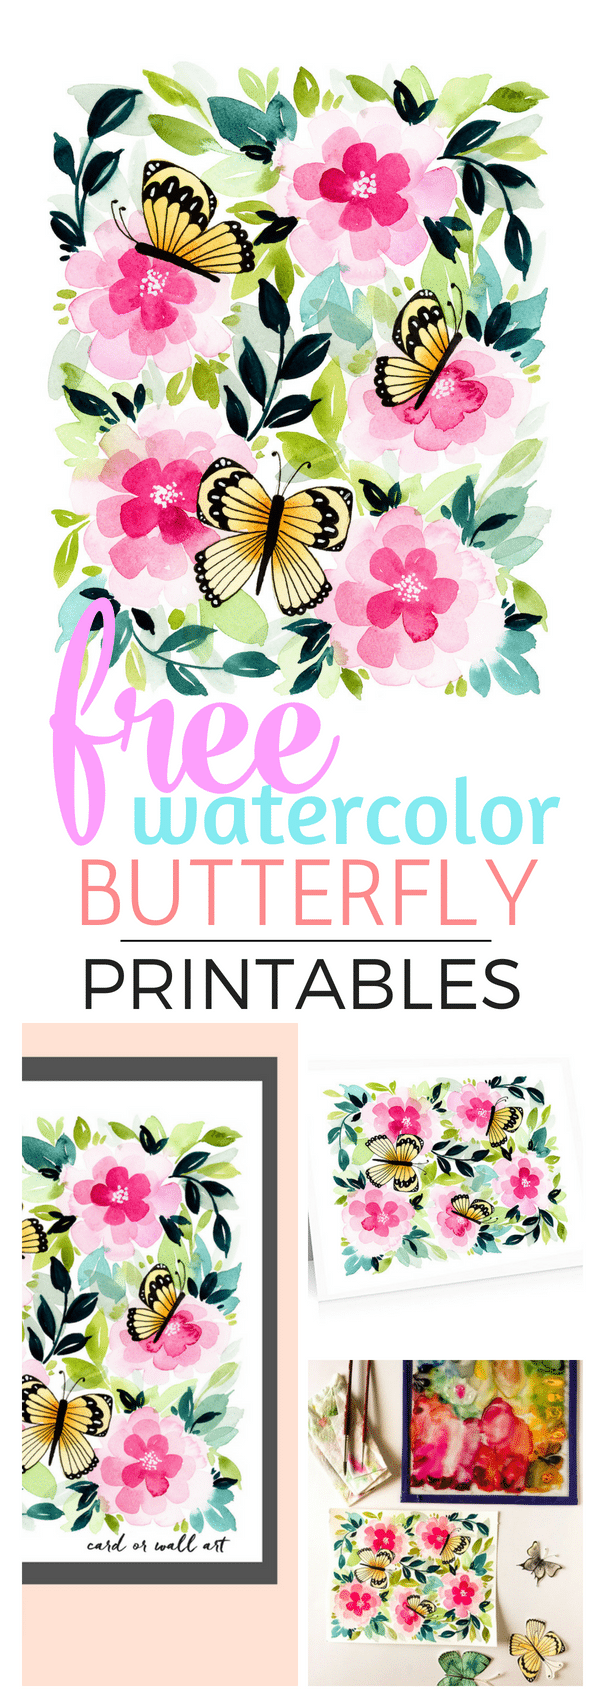 This sweet watercolor is free to print for wall art or note cards!  Suprise someone who loves summer with this thoughtful, high-quality art. #printable #summer #freeprintable #watercolor